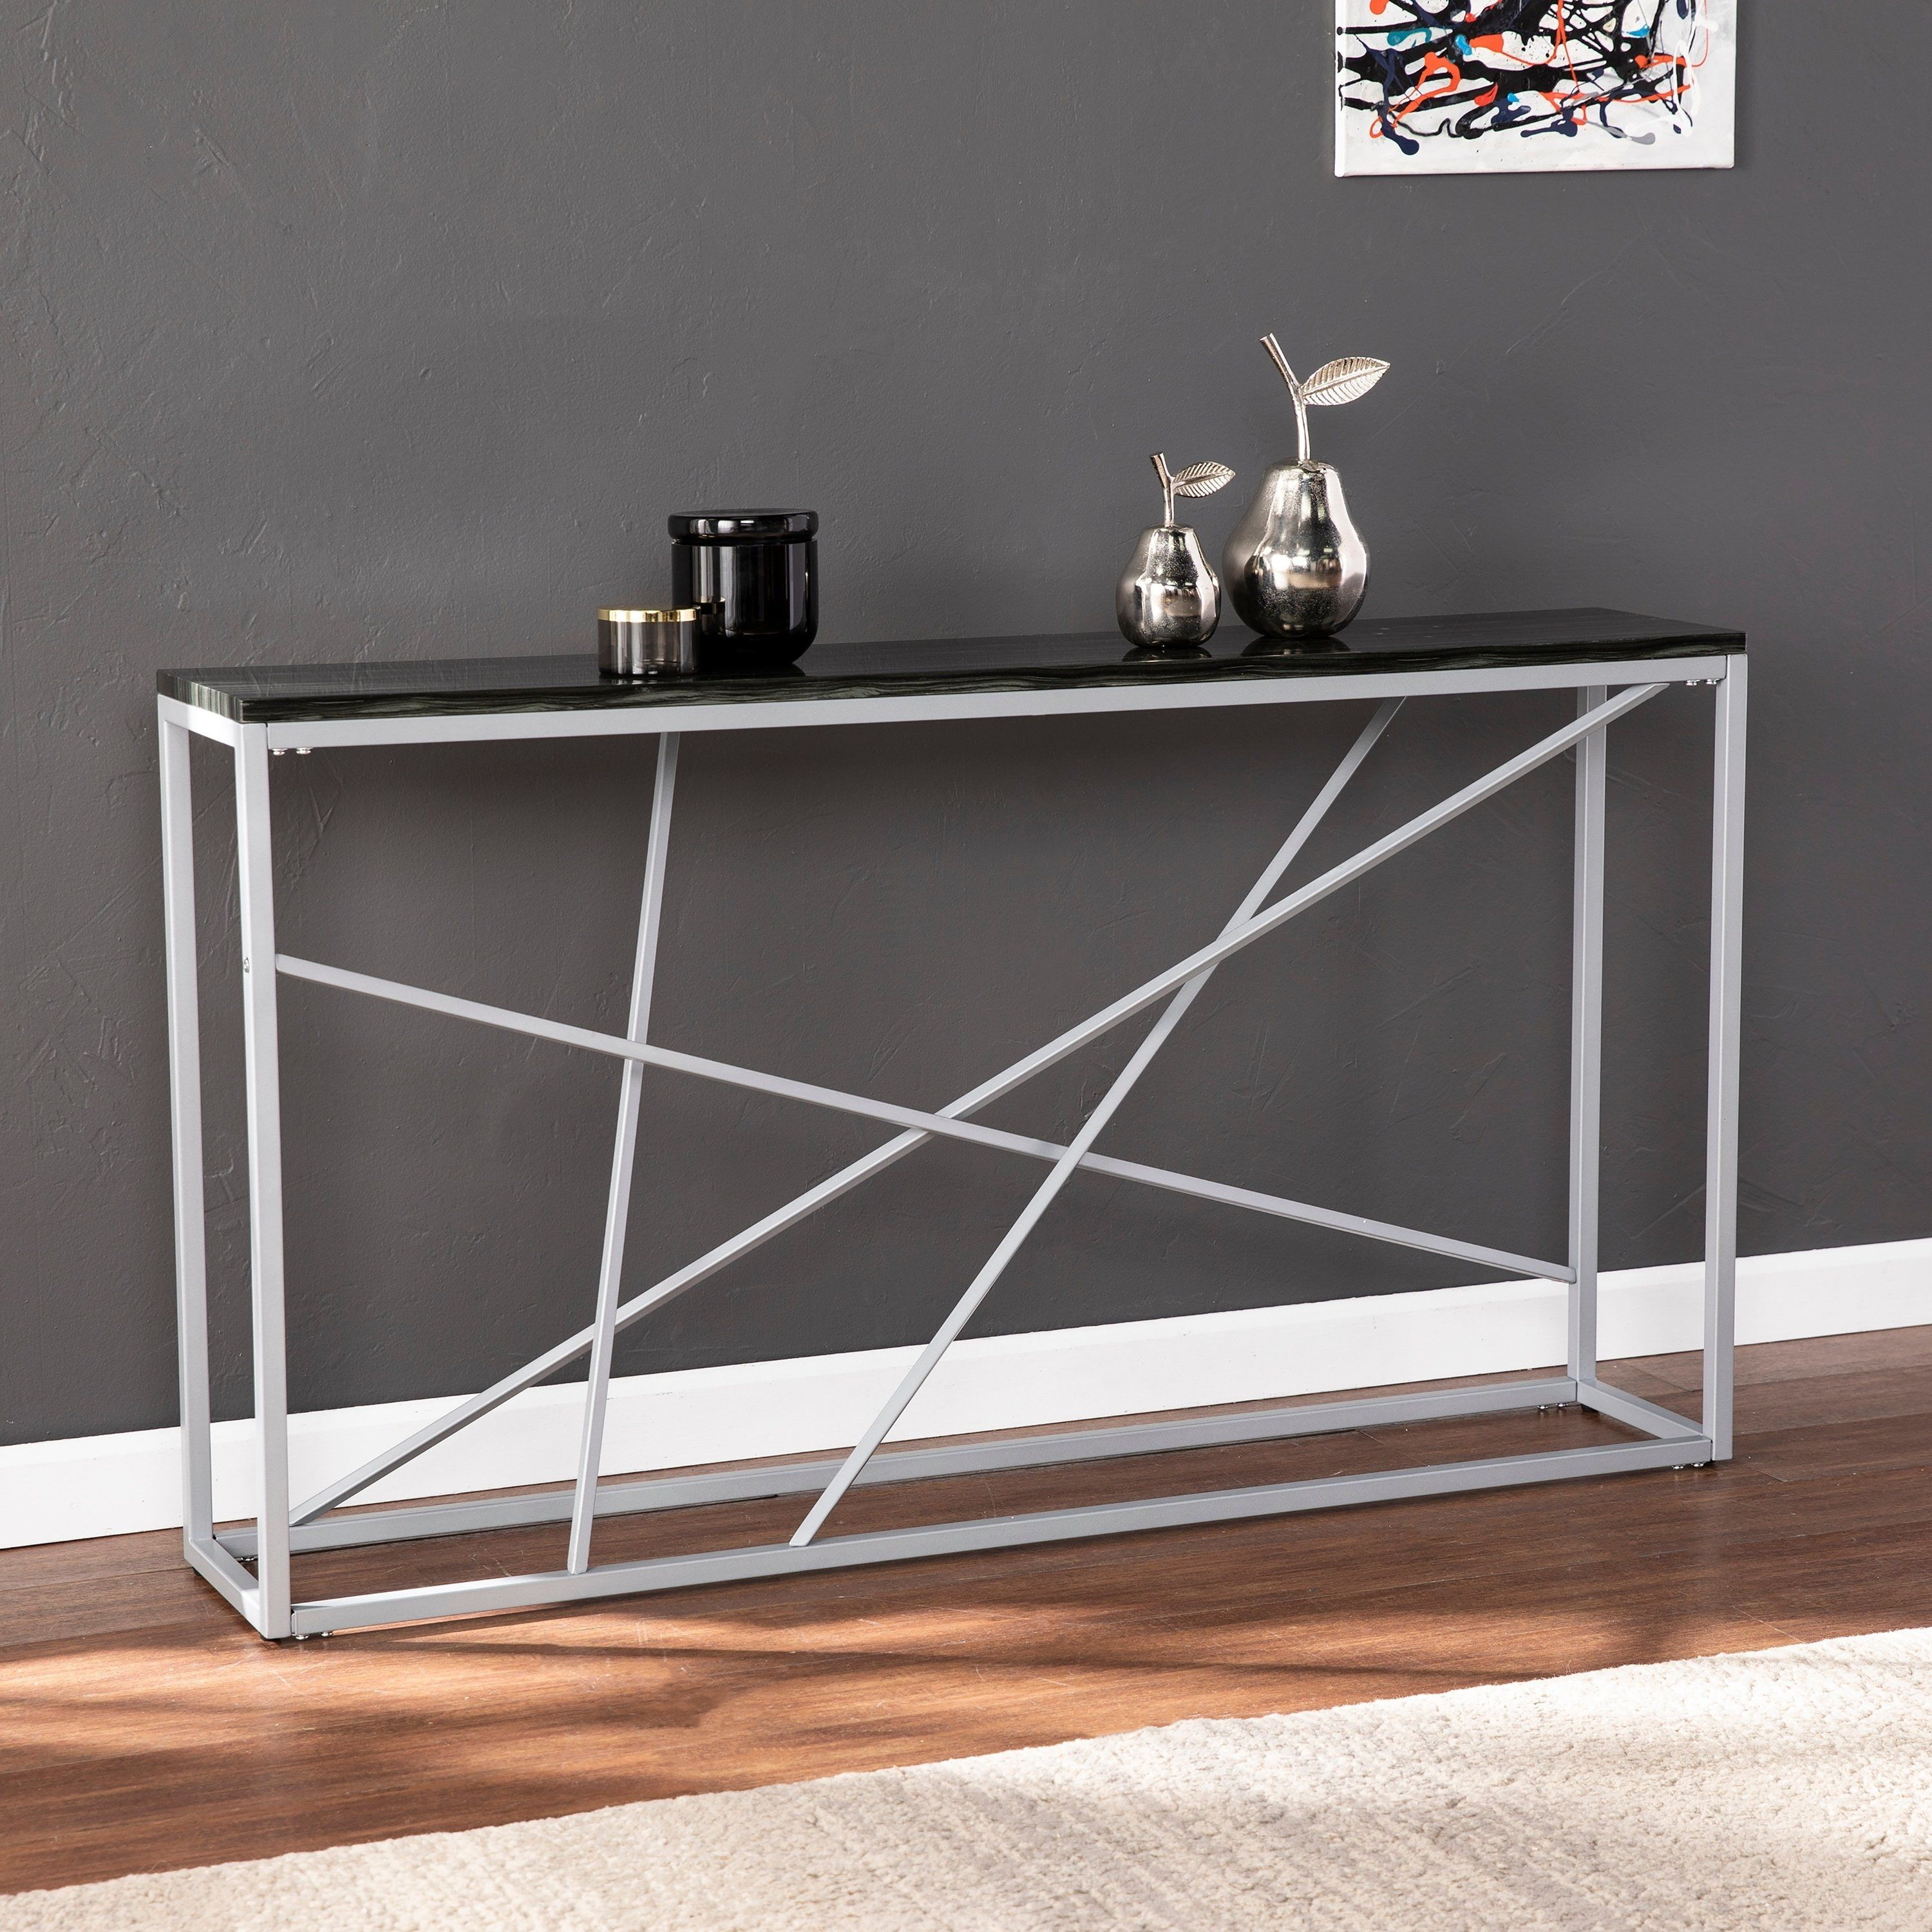 Terrific Strick Bolton Sigrid Faux Marble Skinny Console Table Pabps2019 Chair Design Images Pabps2019Com